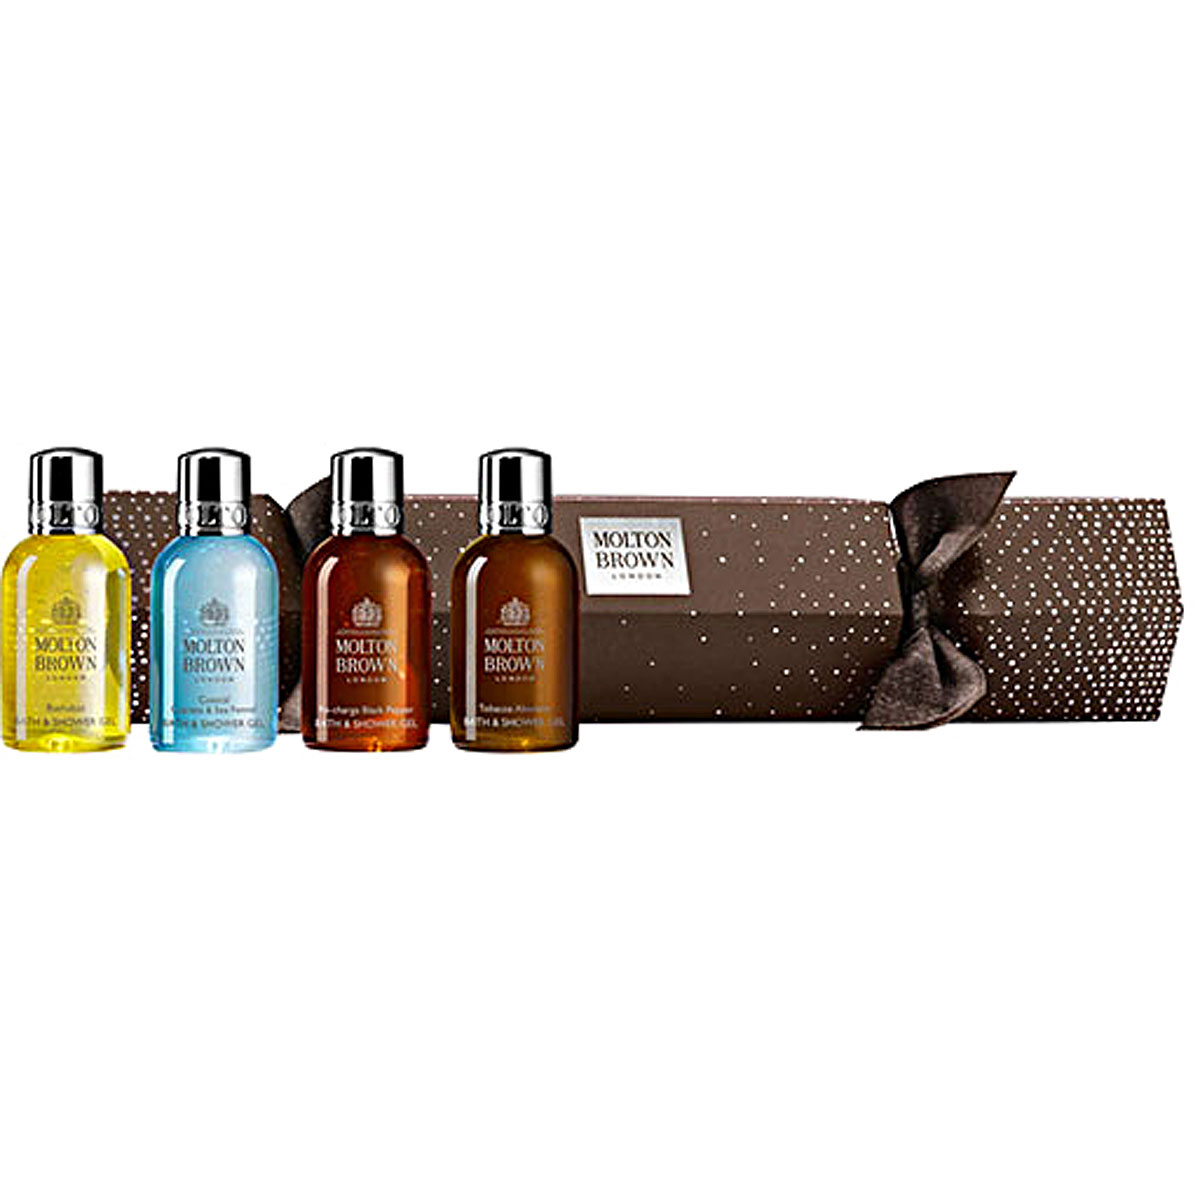 Molton Brown Beauty for Women, Distinguished Treats Cracker - Bath And Shower Gel - 4 X 50 Ml, 2019